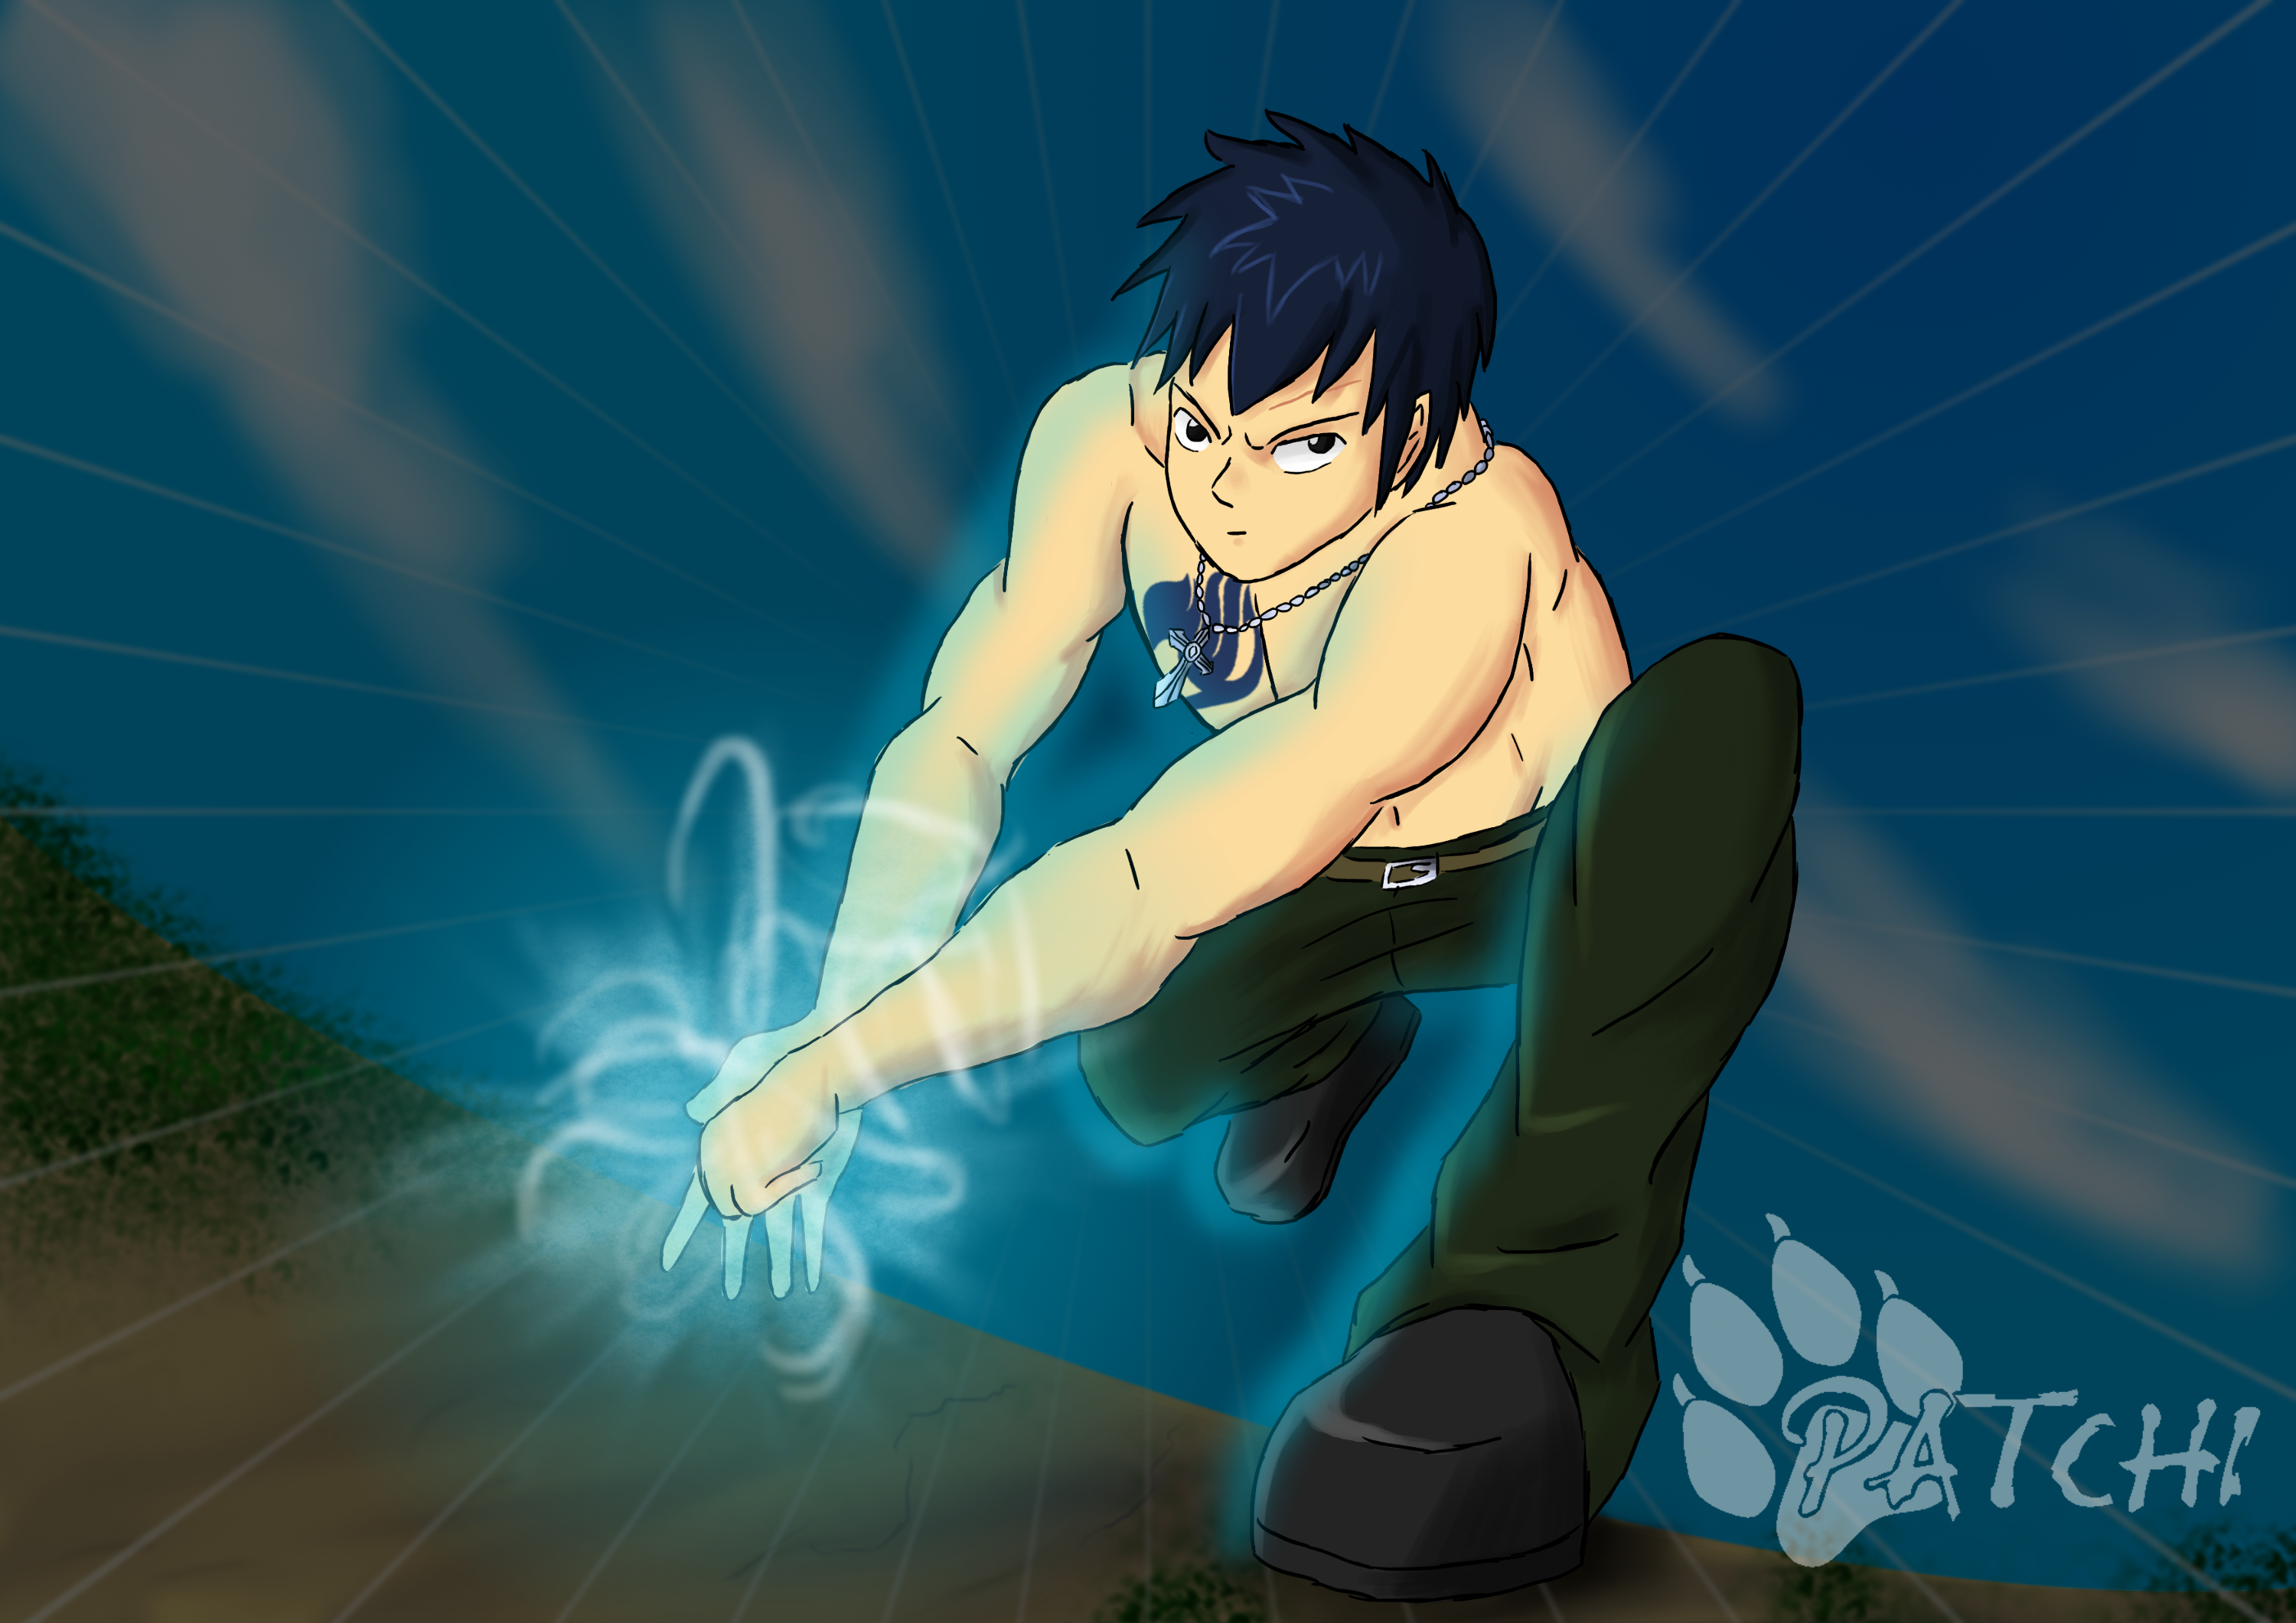 Mes fanart [Patchi] Gray_fullbuster_by_lepatchi-d4c9kl6